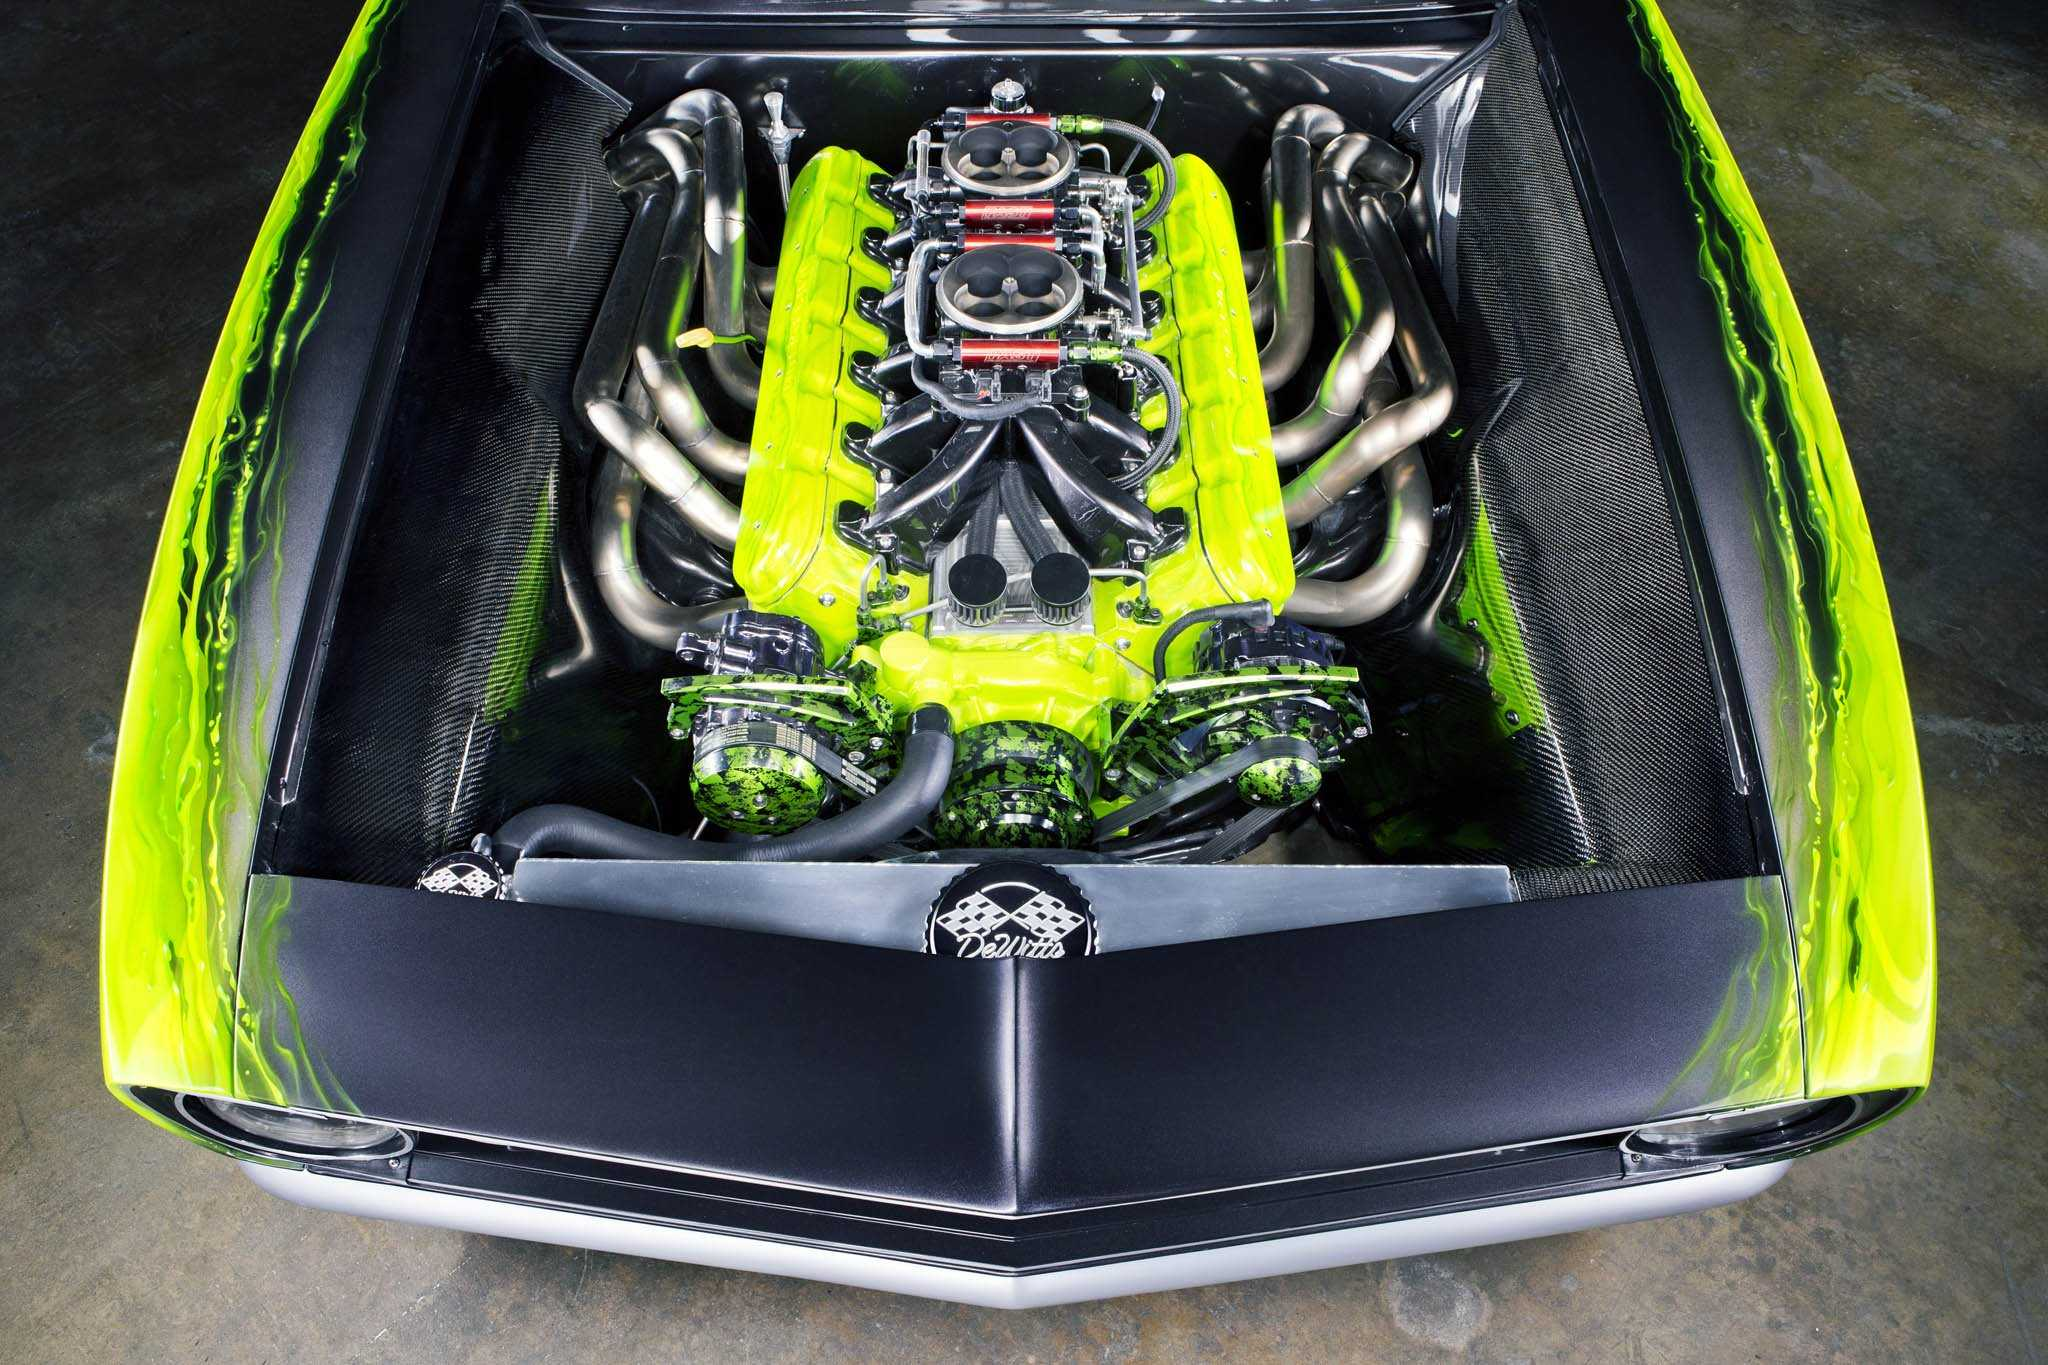 Meet The World's Only V12, LS-Powered Camaro